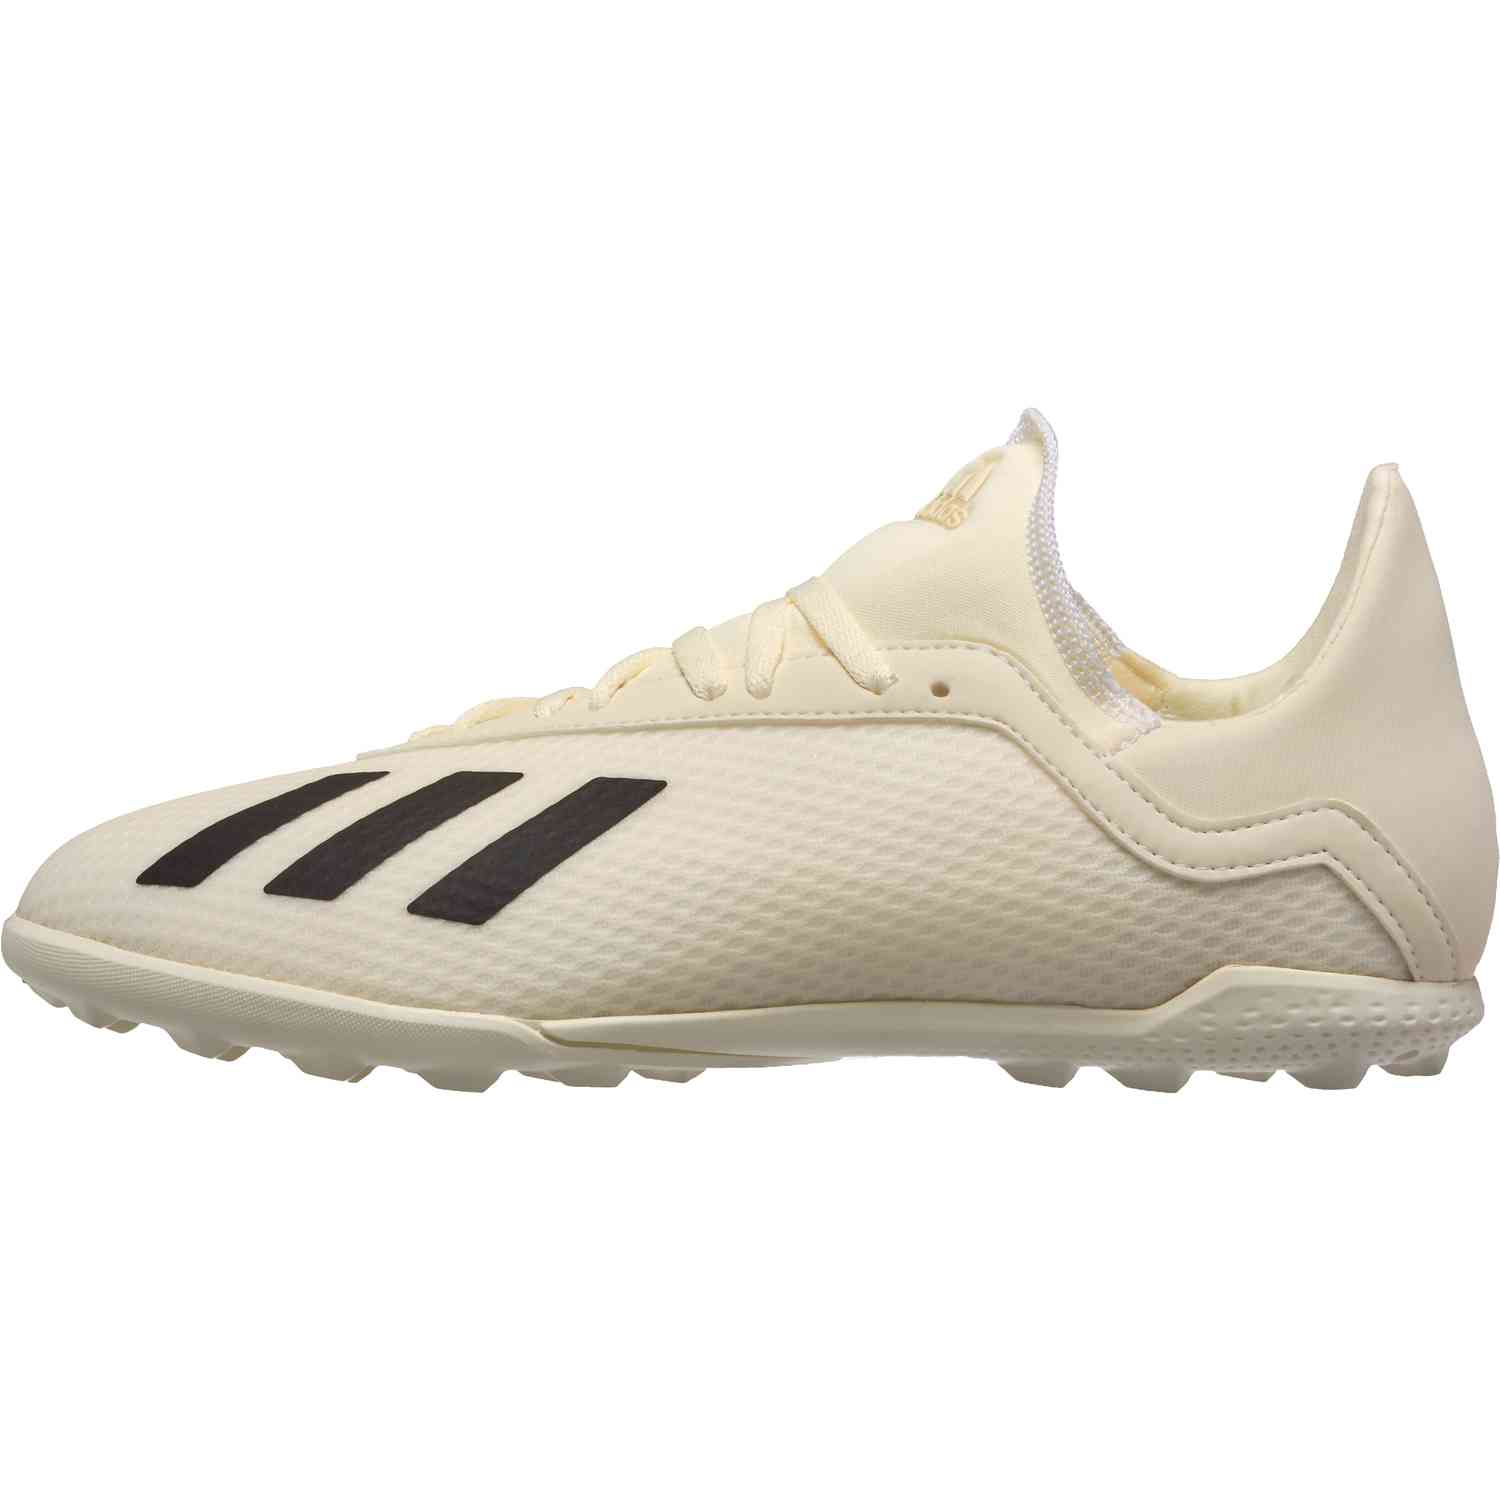 new product ab0a7 fb804 adidas X Tango 18.3 TF - Youth - Off White/White/Black - SoccerPro